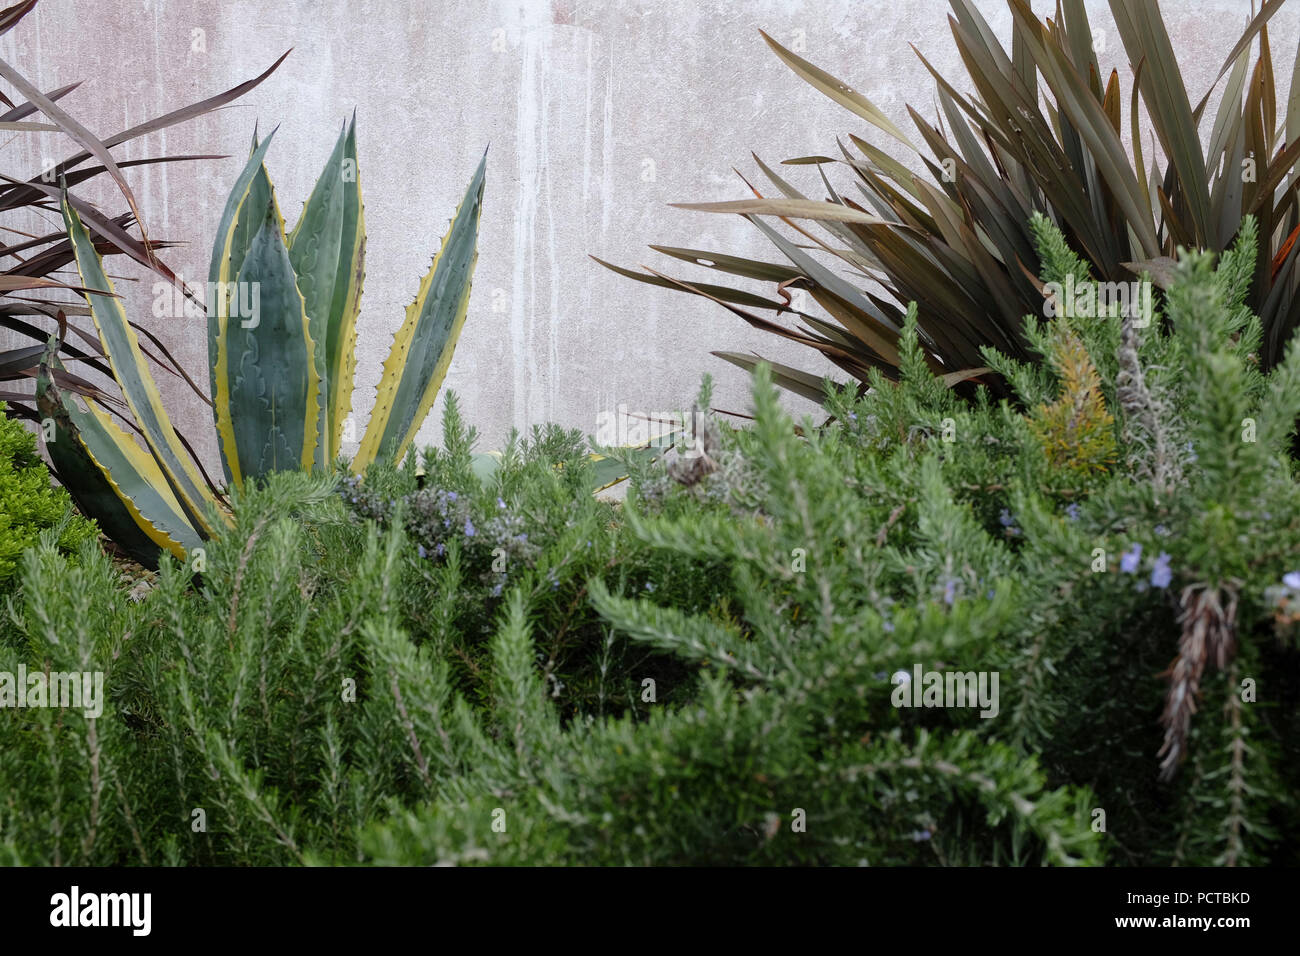 Plants in the front yard - Stock Image